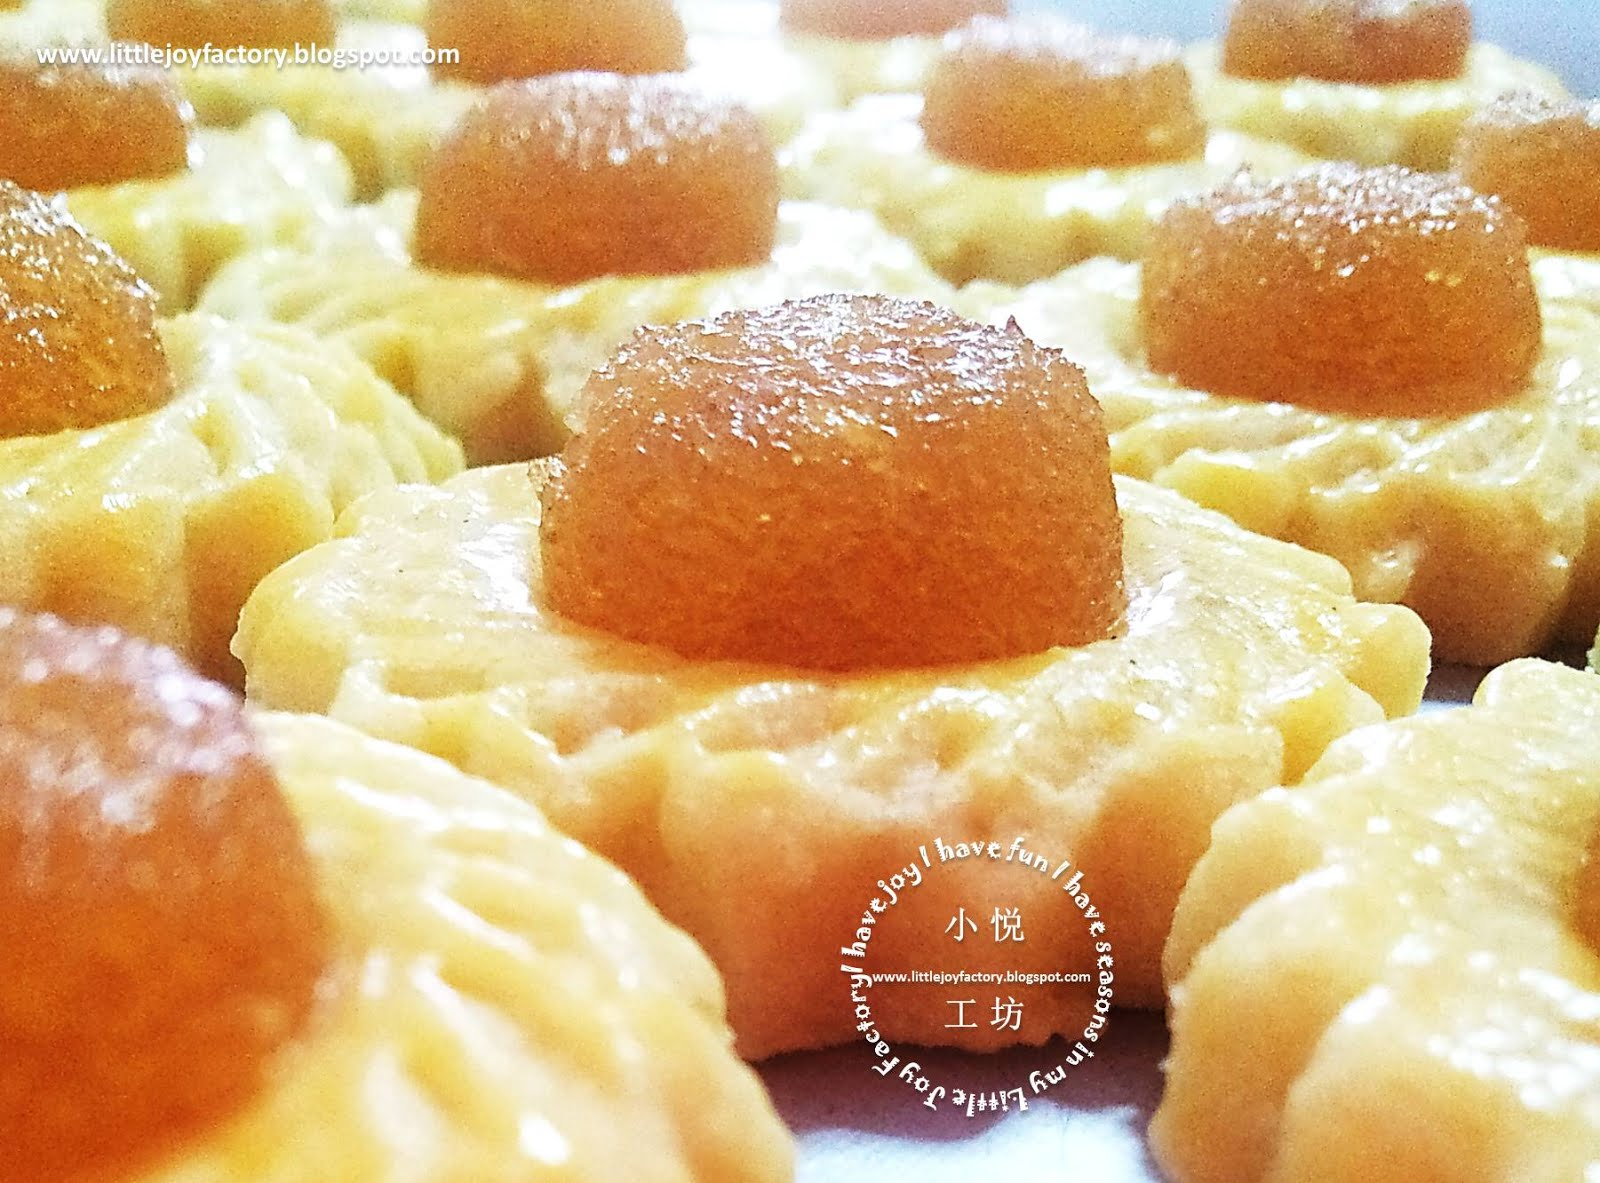 ... Goodies Box: Pineapple Tarts (open-version) 新年礼盒:凤梨酥